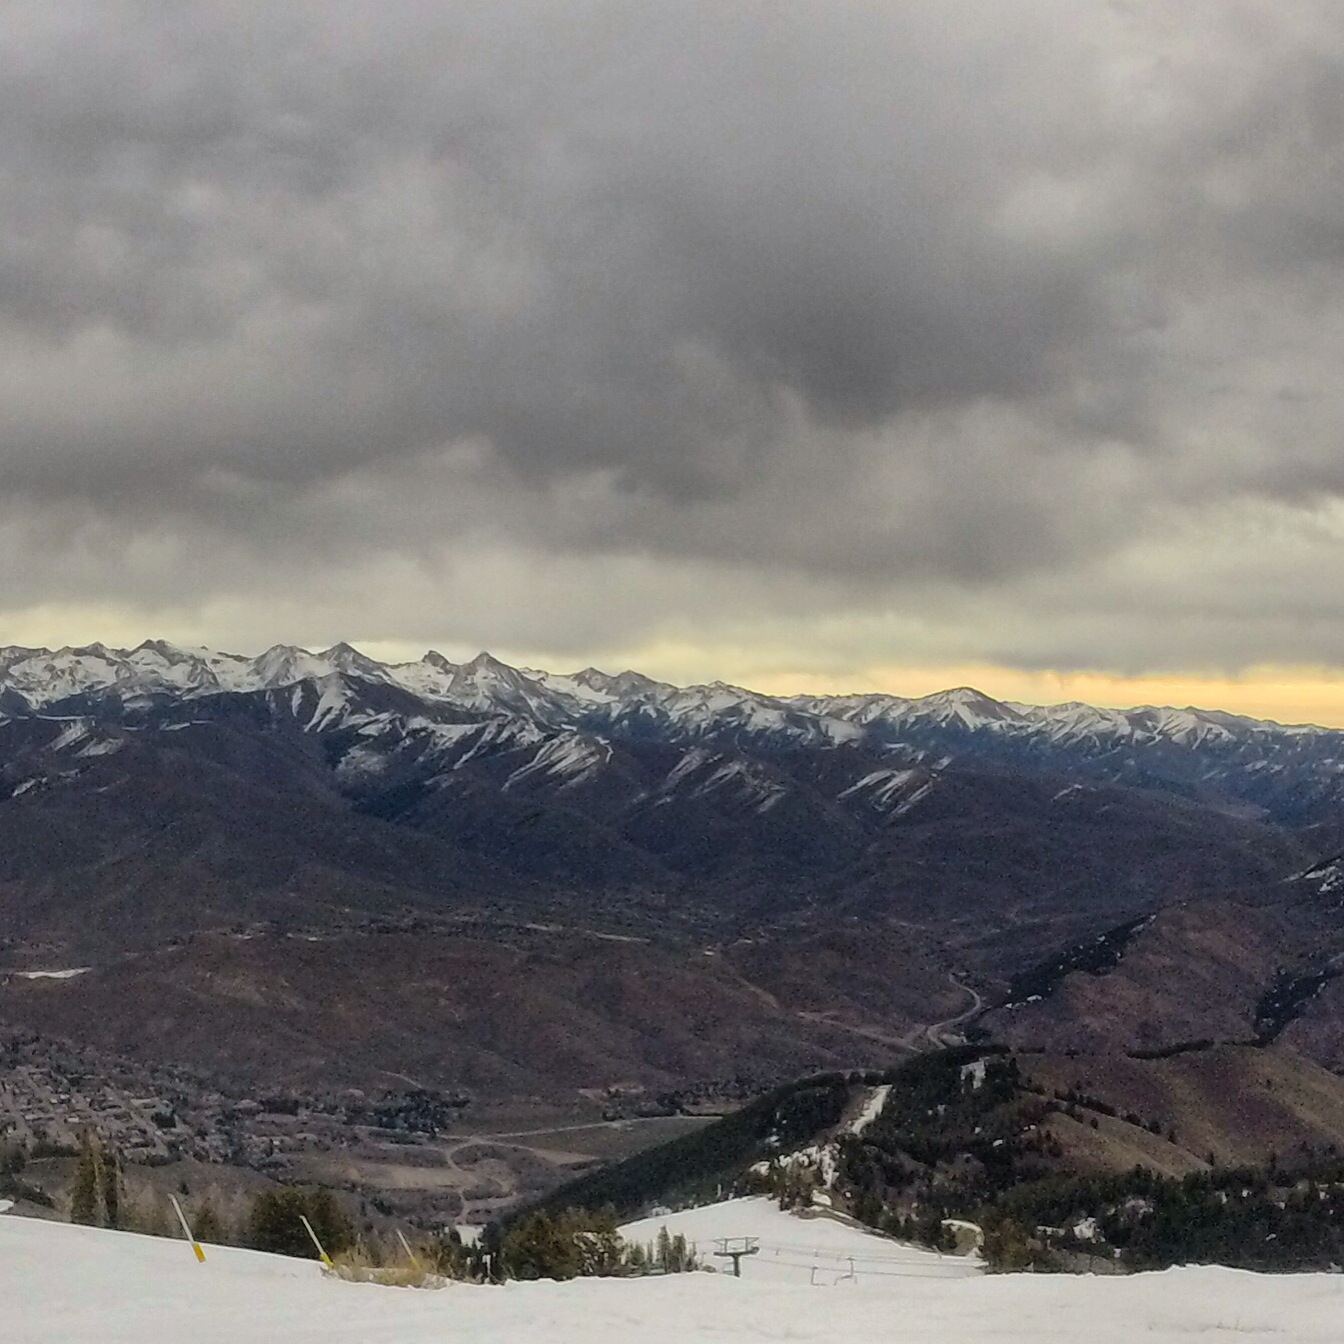 view from Sun Valley 3/15